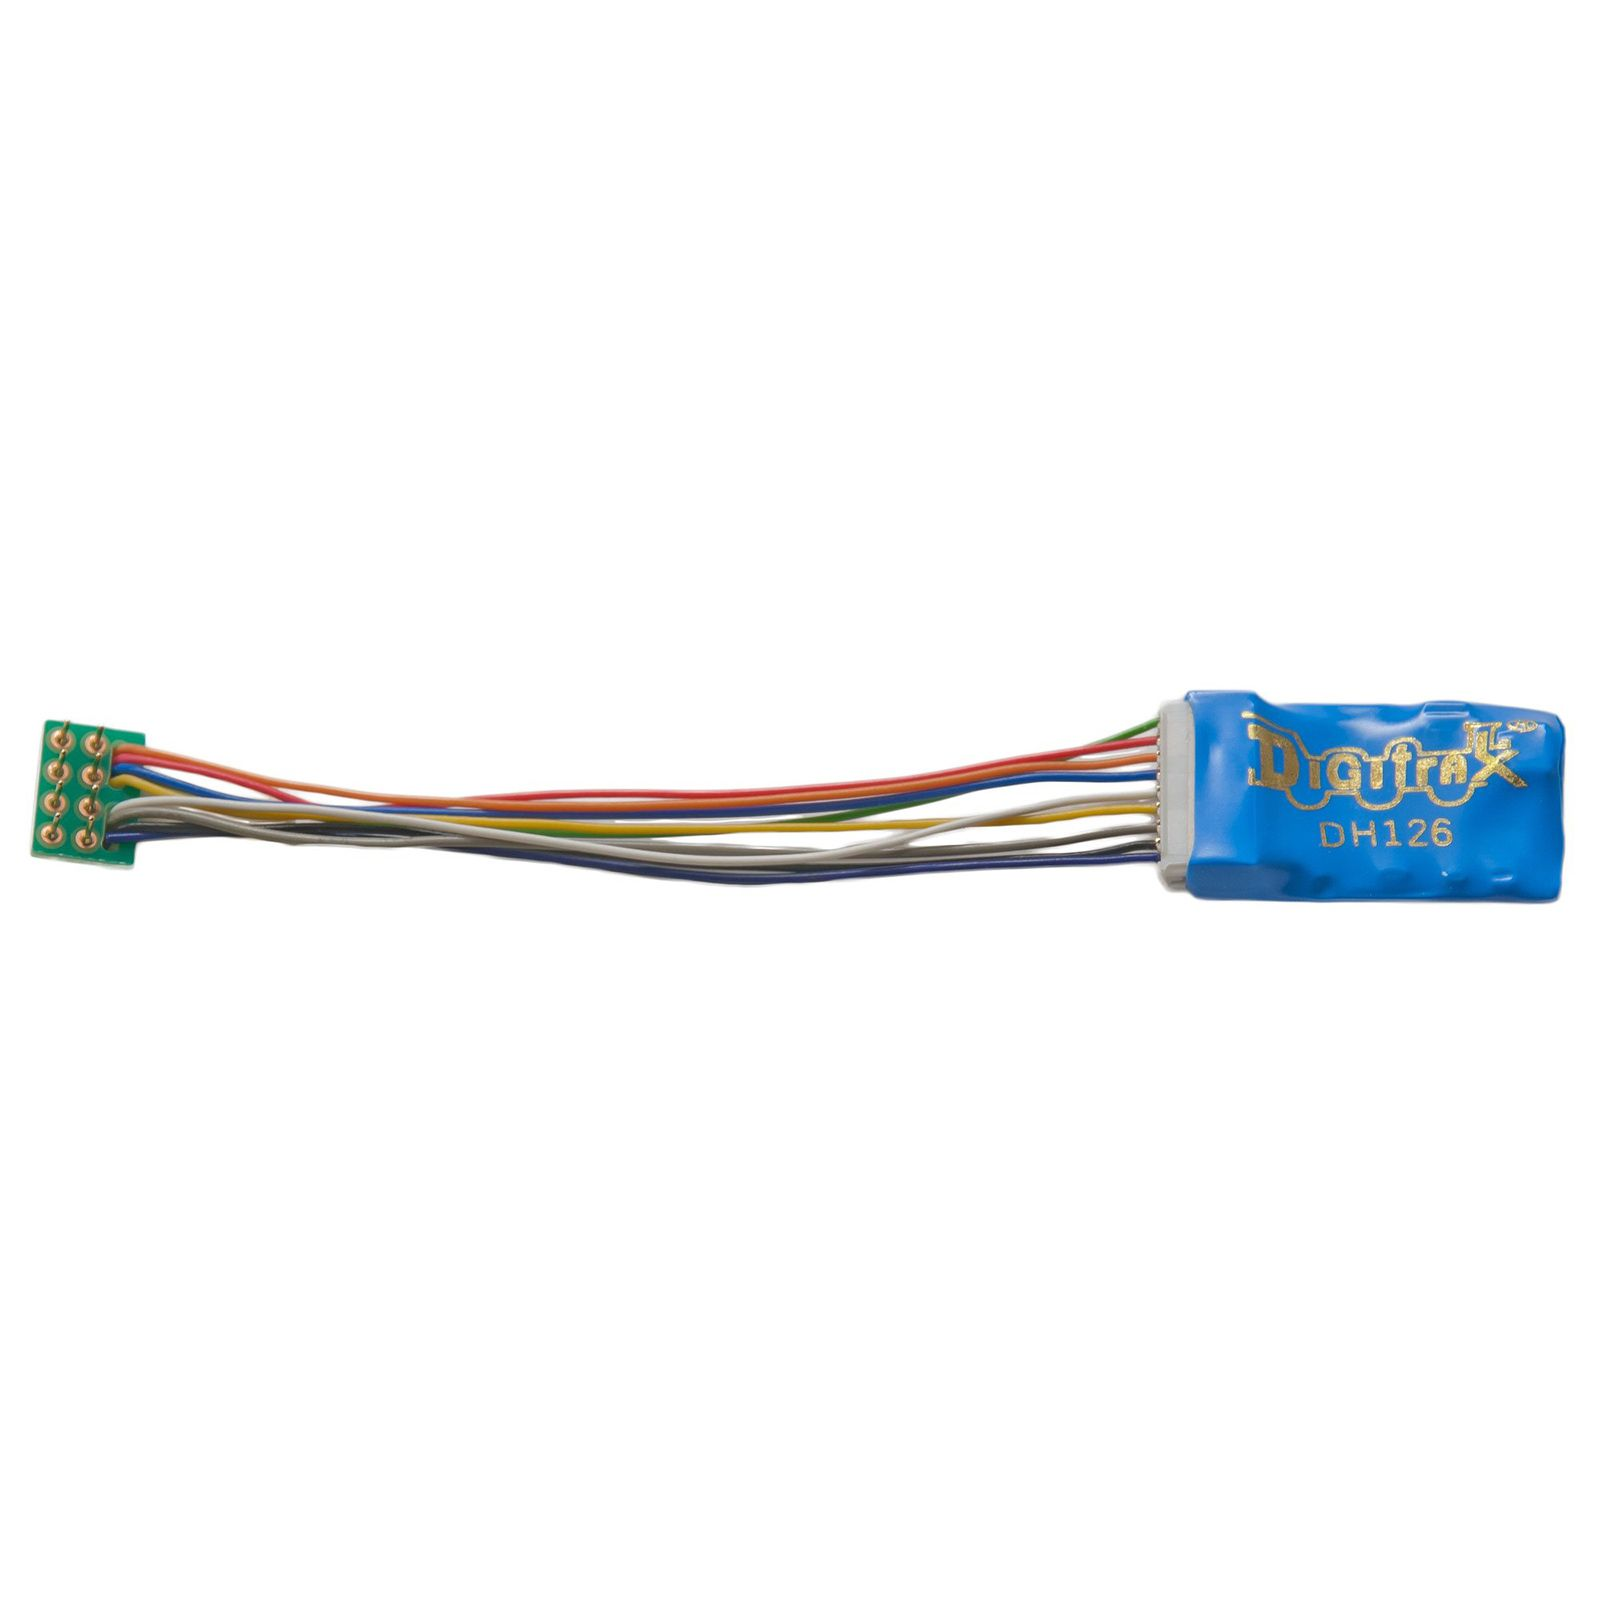 Digitrax Dh126p Ho Scale Decoder Economy Medium Plug With Long Wires Digitrax Harness Ho Model Trains Model Train Accessories Toy Train Accessories